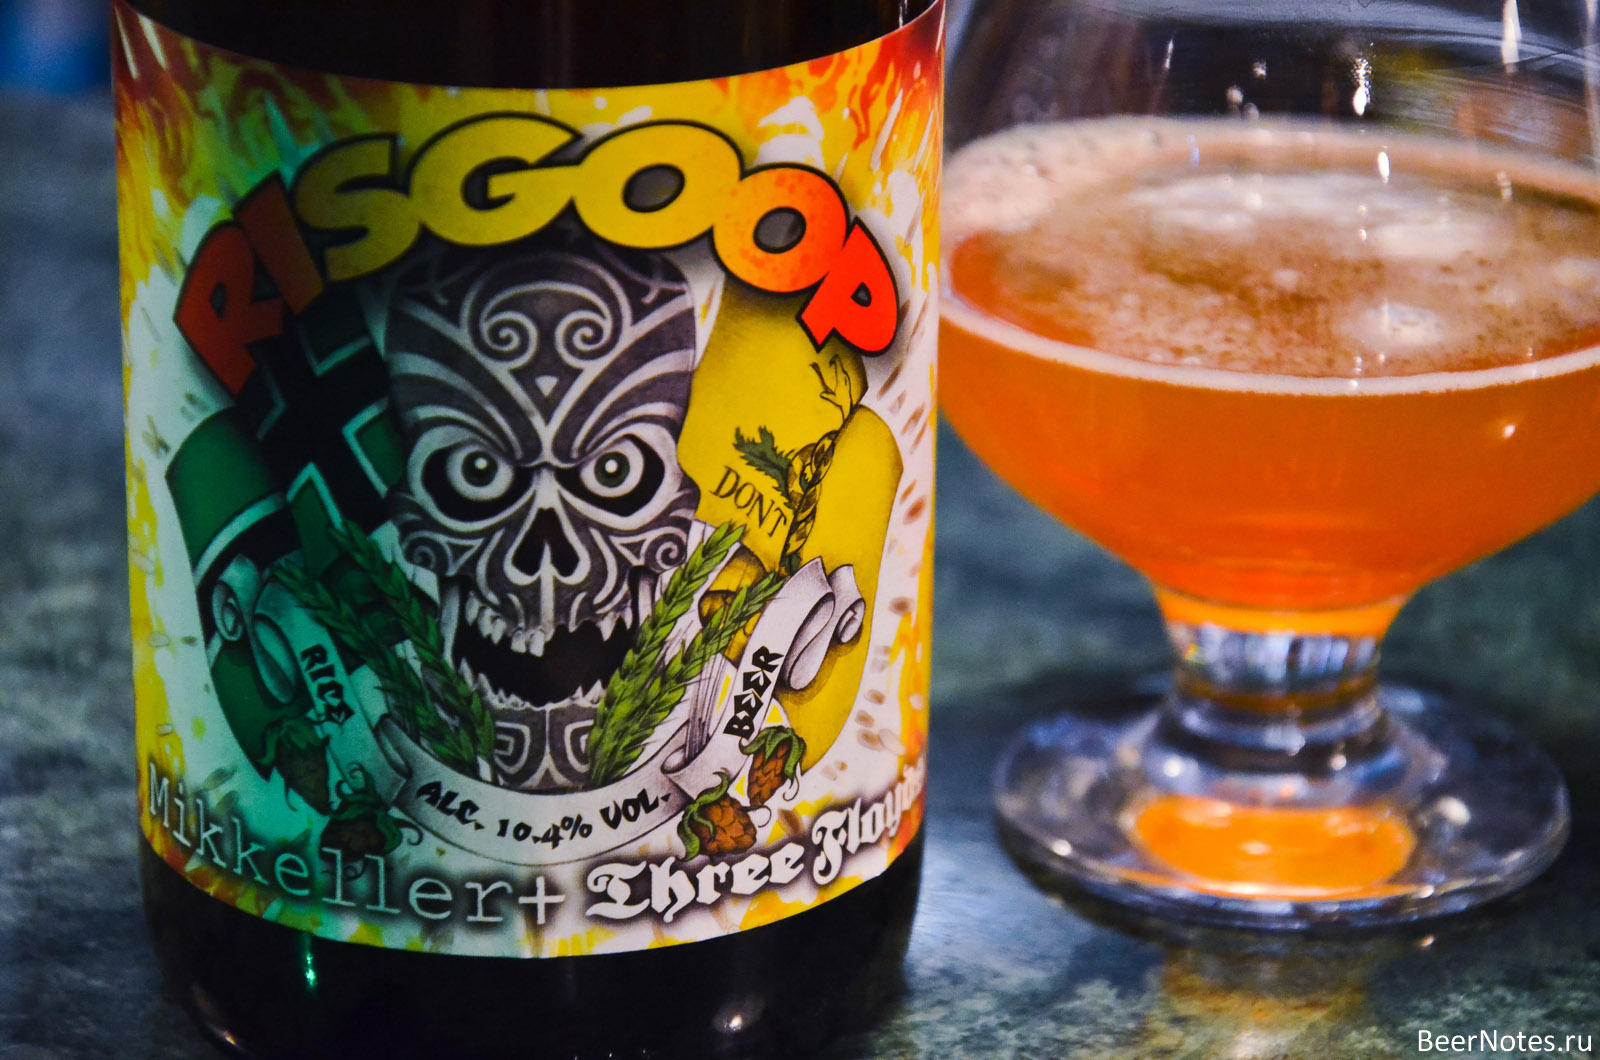 Mikkeller Three Floyds – Risgoop3